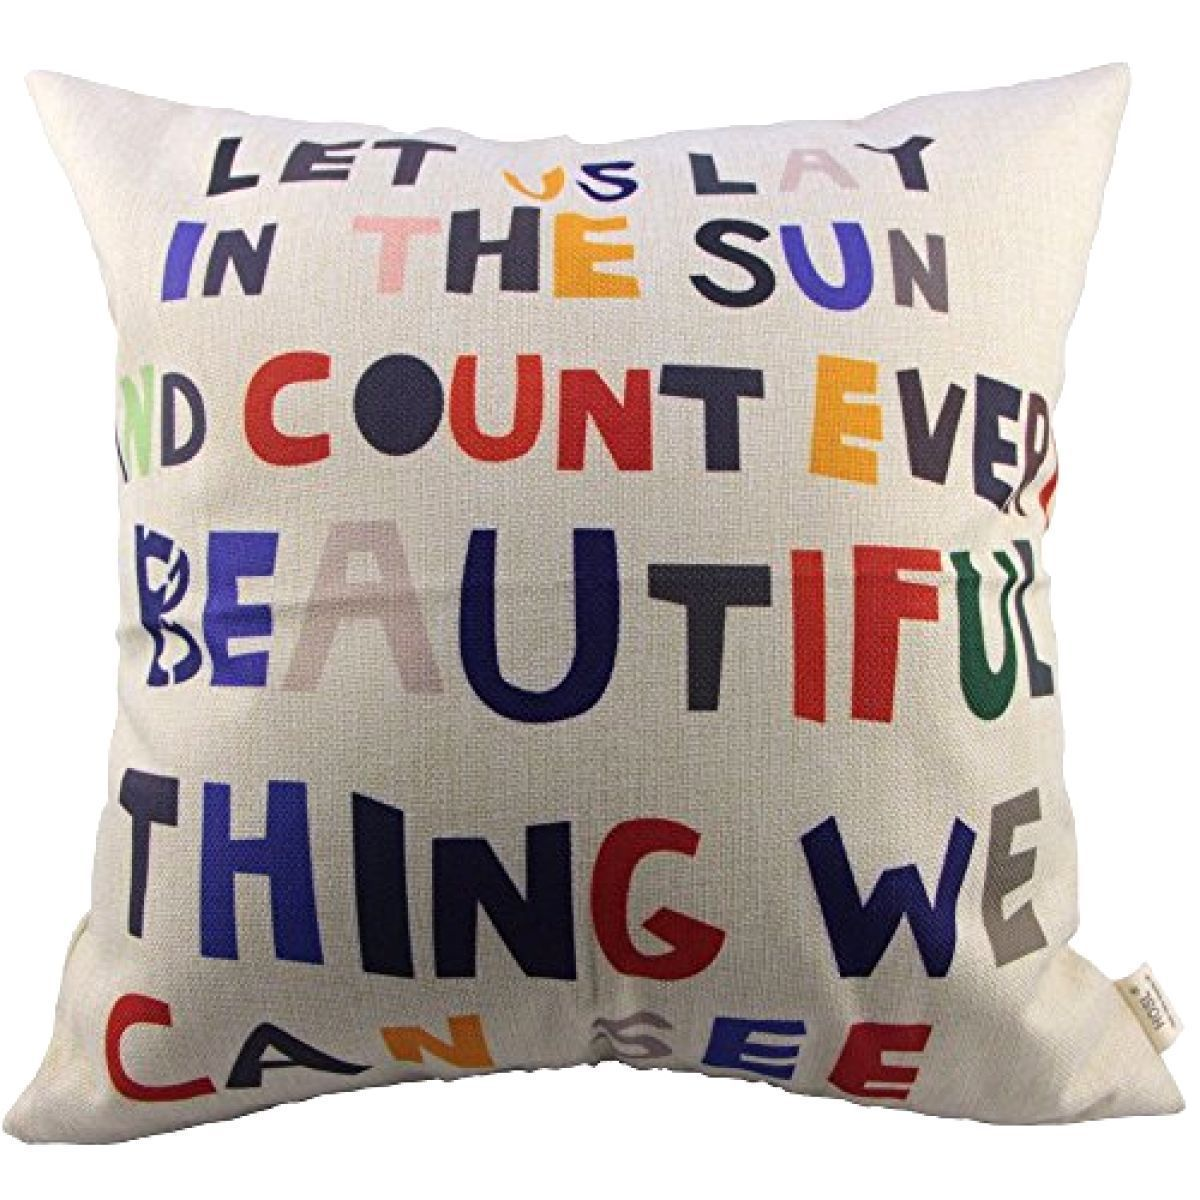 HOSL Meaningful Quotes Colorful Letters Throw Pillow Case Decor Cushion Covers S